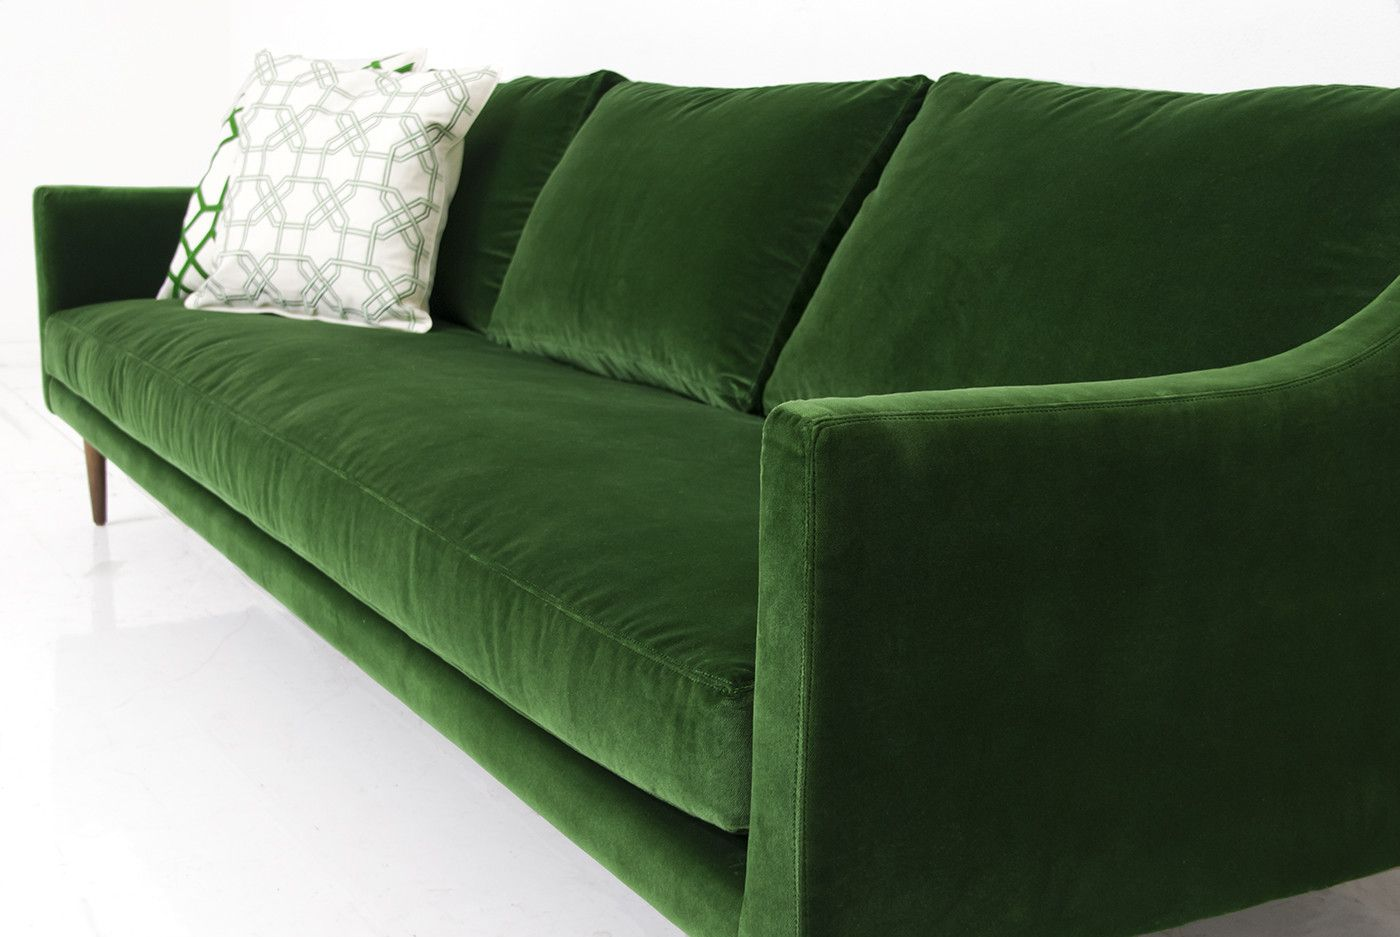 Kelly green velvet curtains - Naples Sofa In Emerald Green Velvet